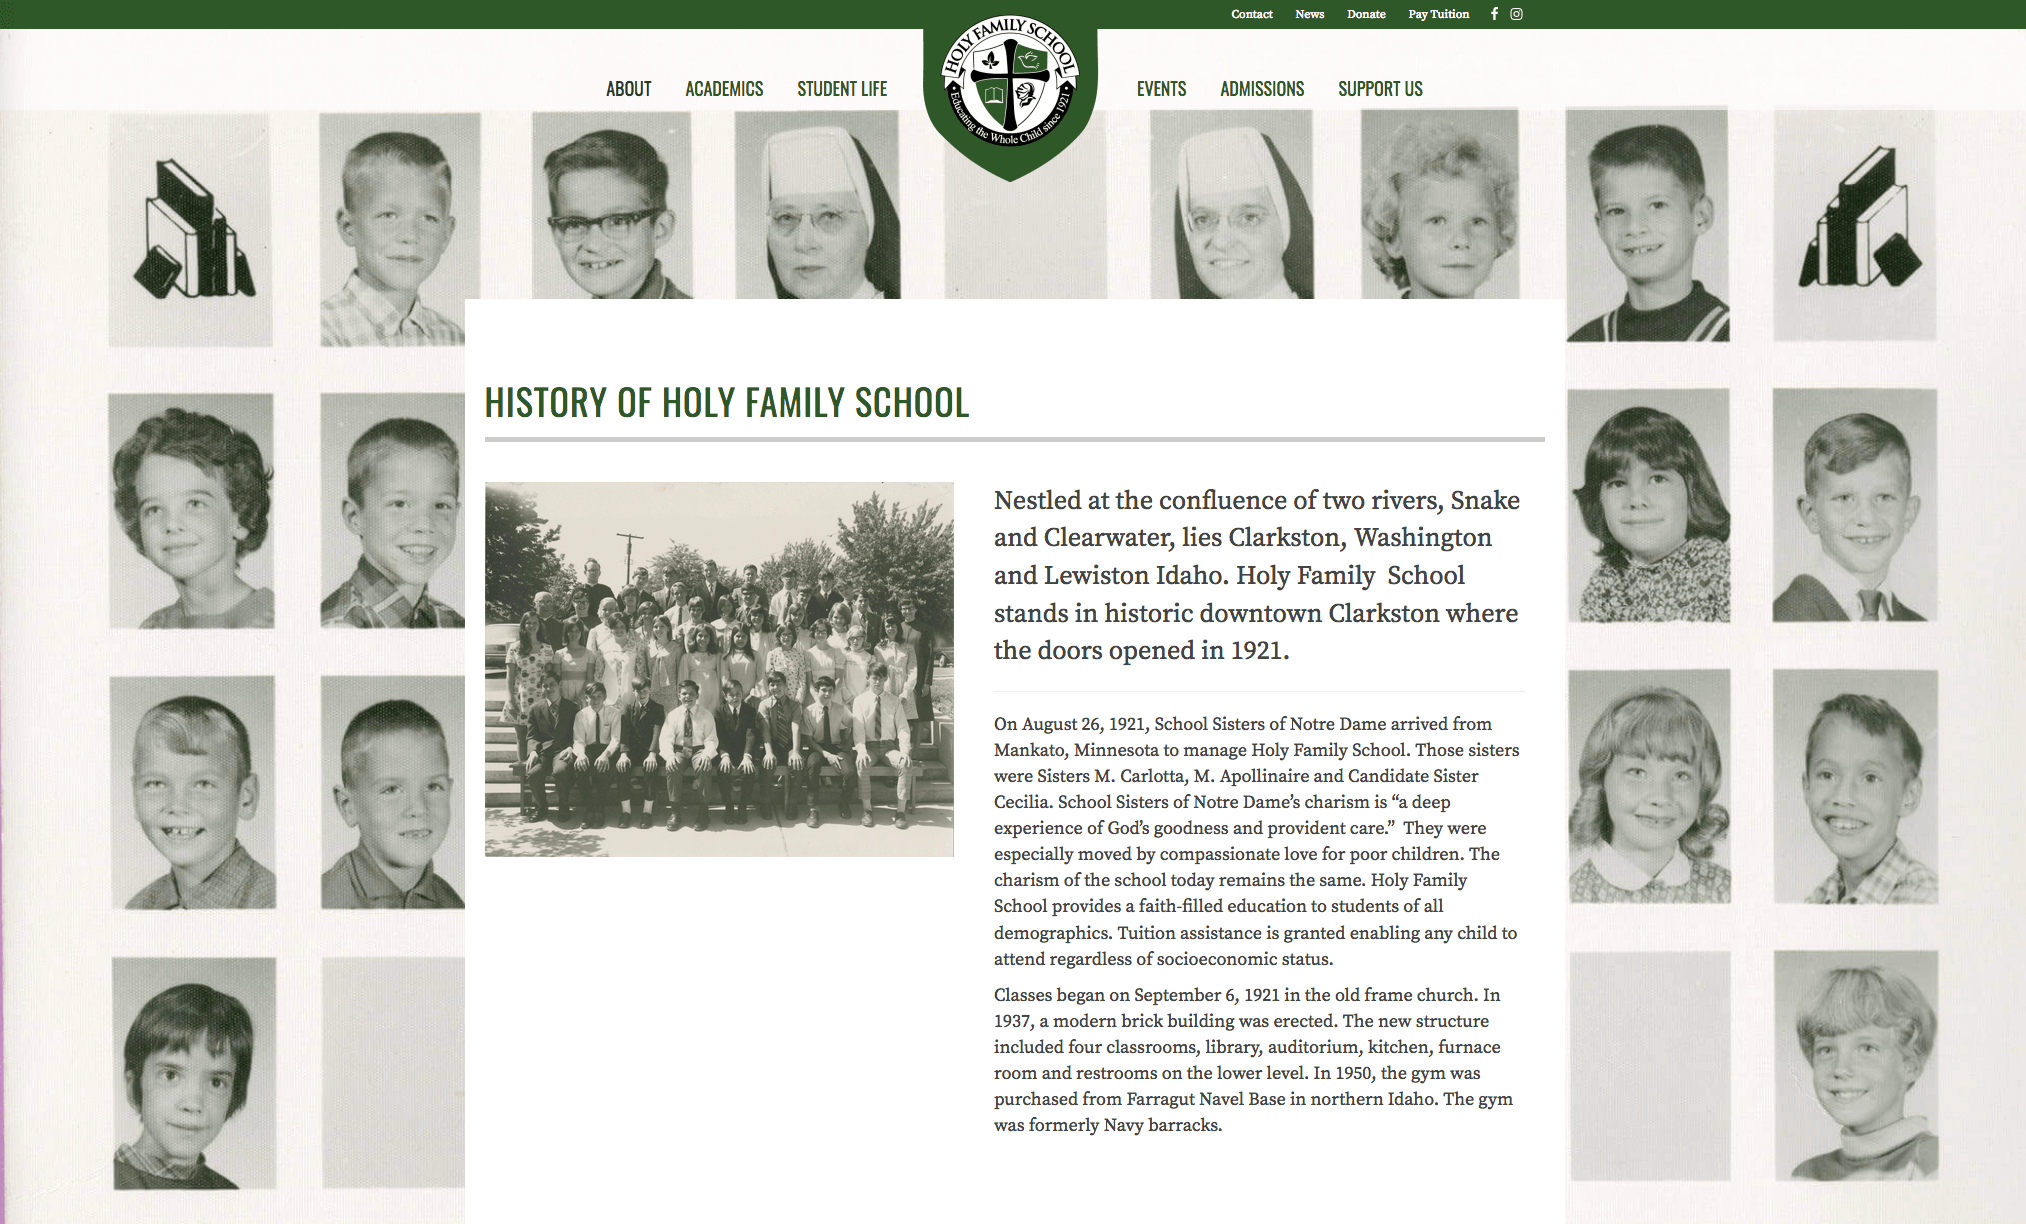 northwest-media-advertising-lewiston-idaho-washington-holy-family-school-06